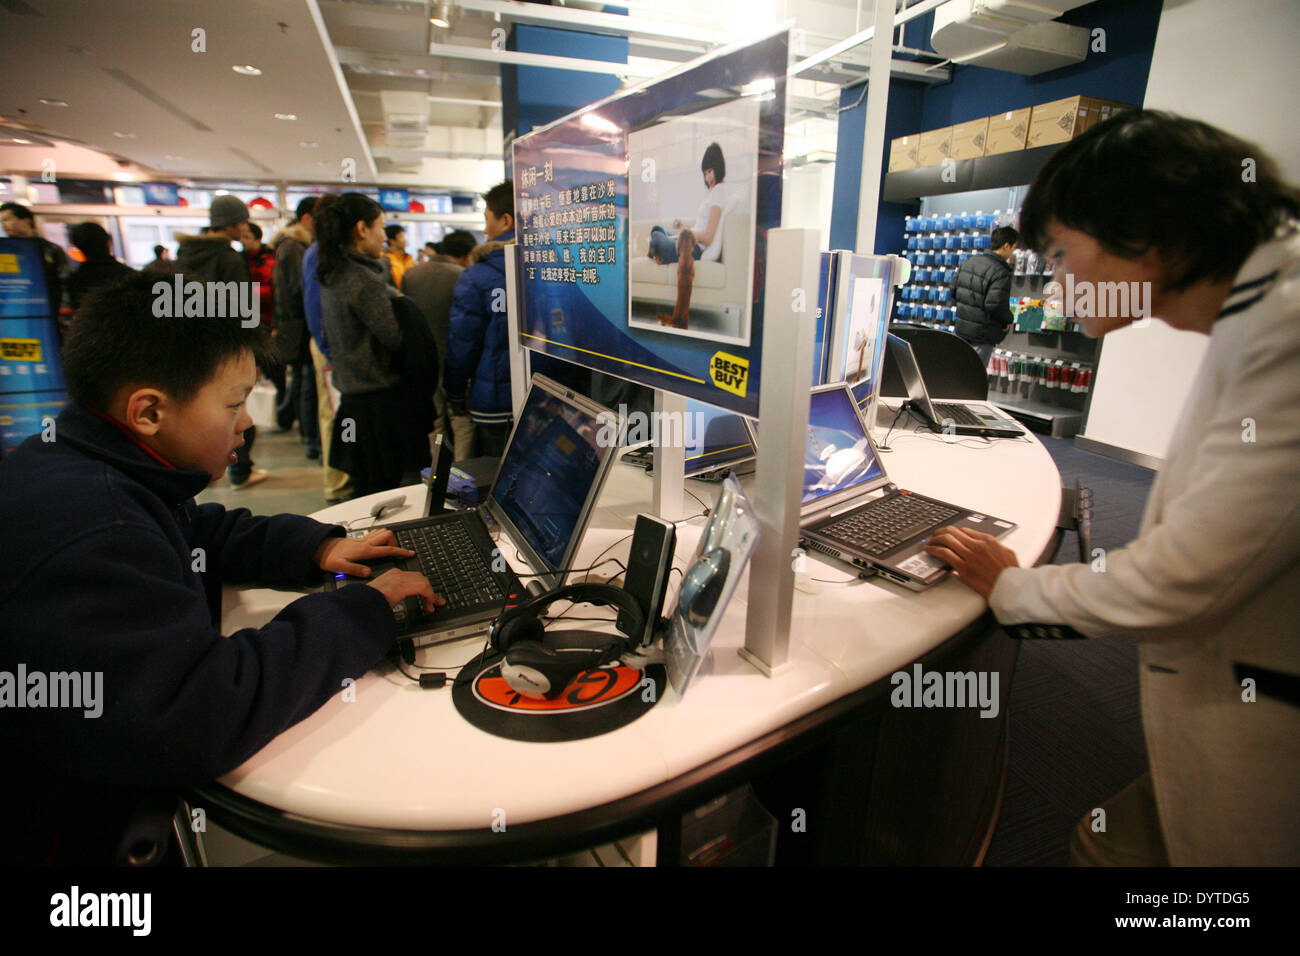 Customers try out laptops inside a Best Buy store in Shanghai - Stock Image